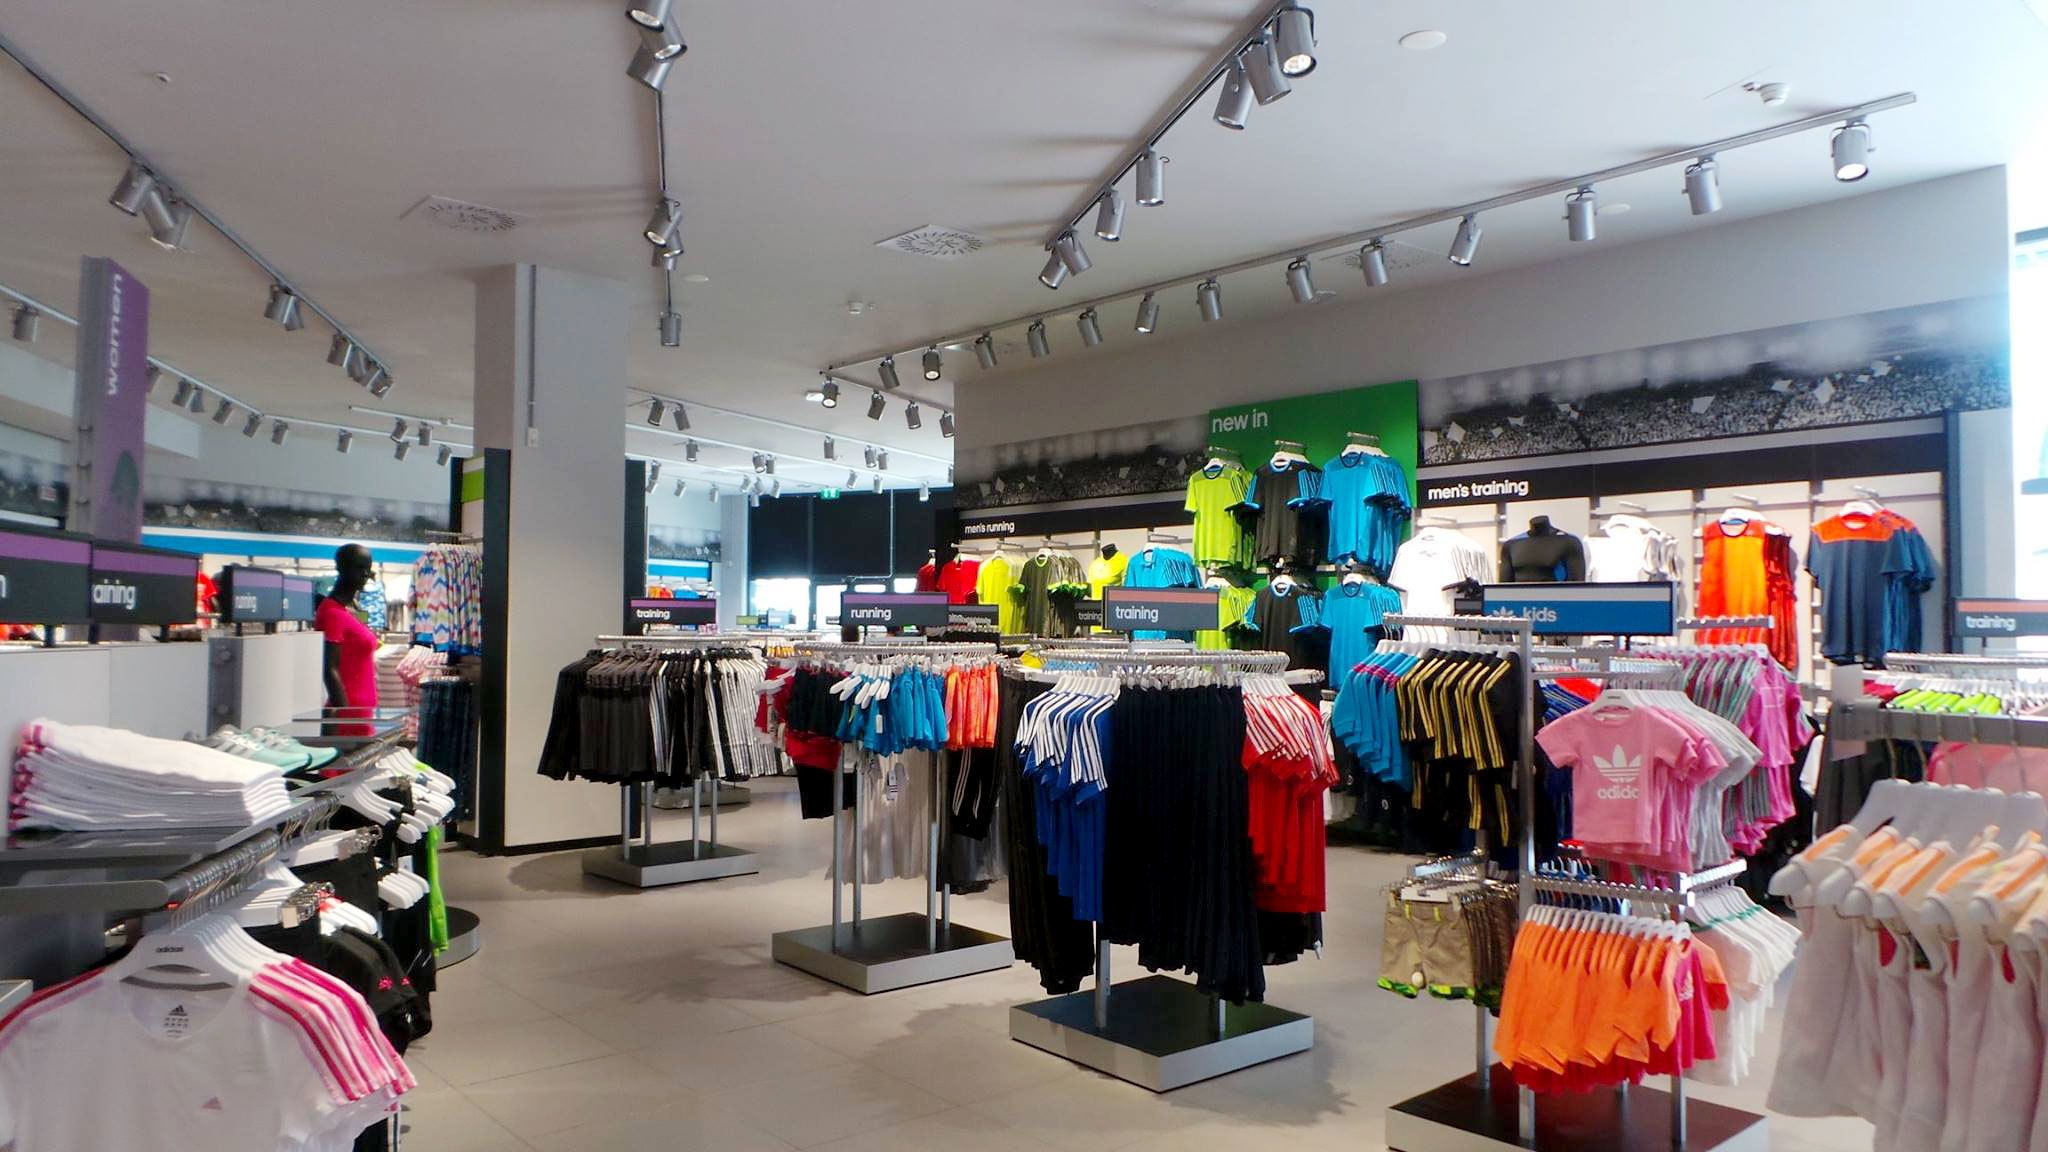 Inside a store at Shopping at Valmontone Outlet in Rome